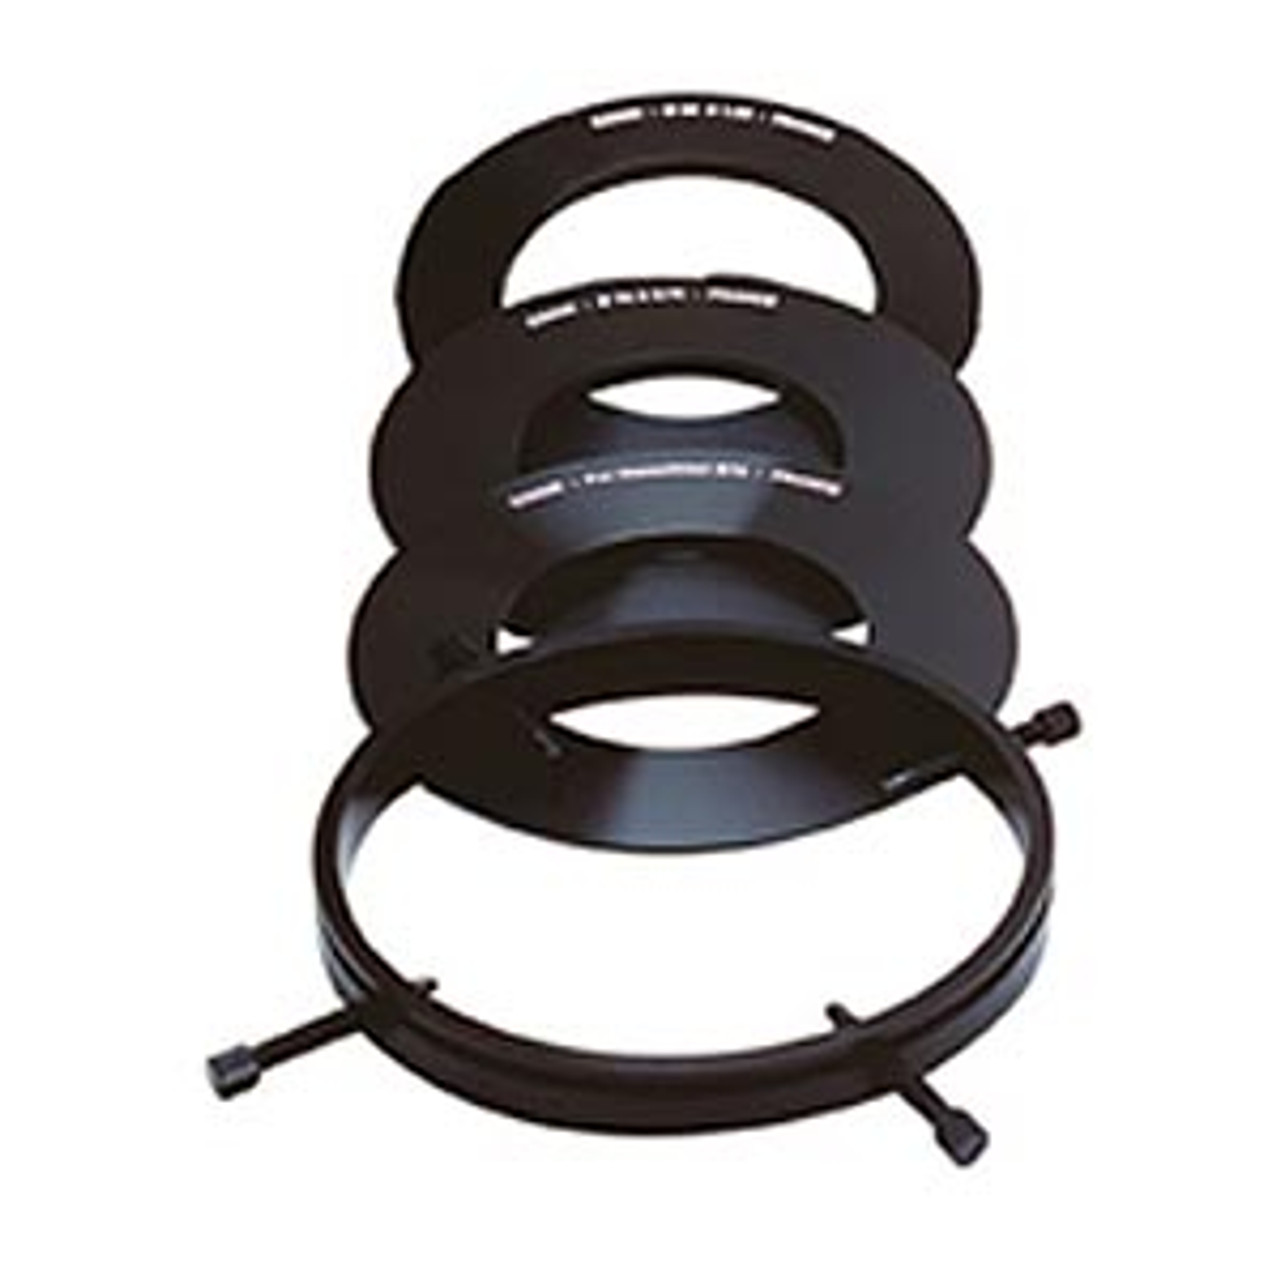 Cokin P472 72mm Adapter Ring